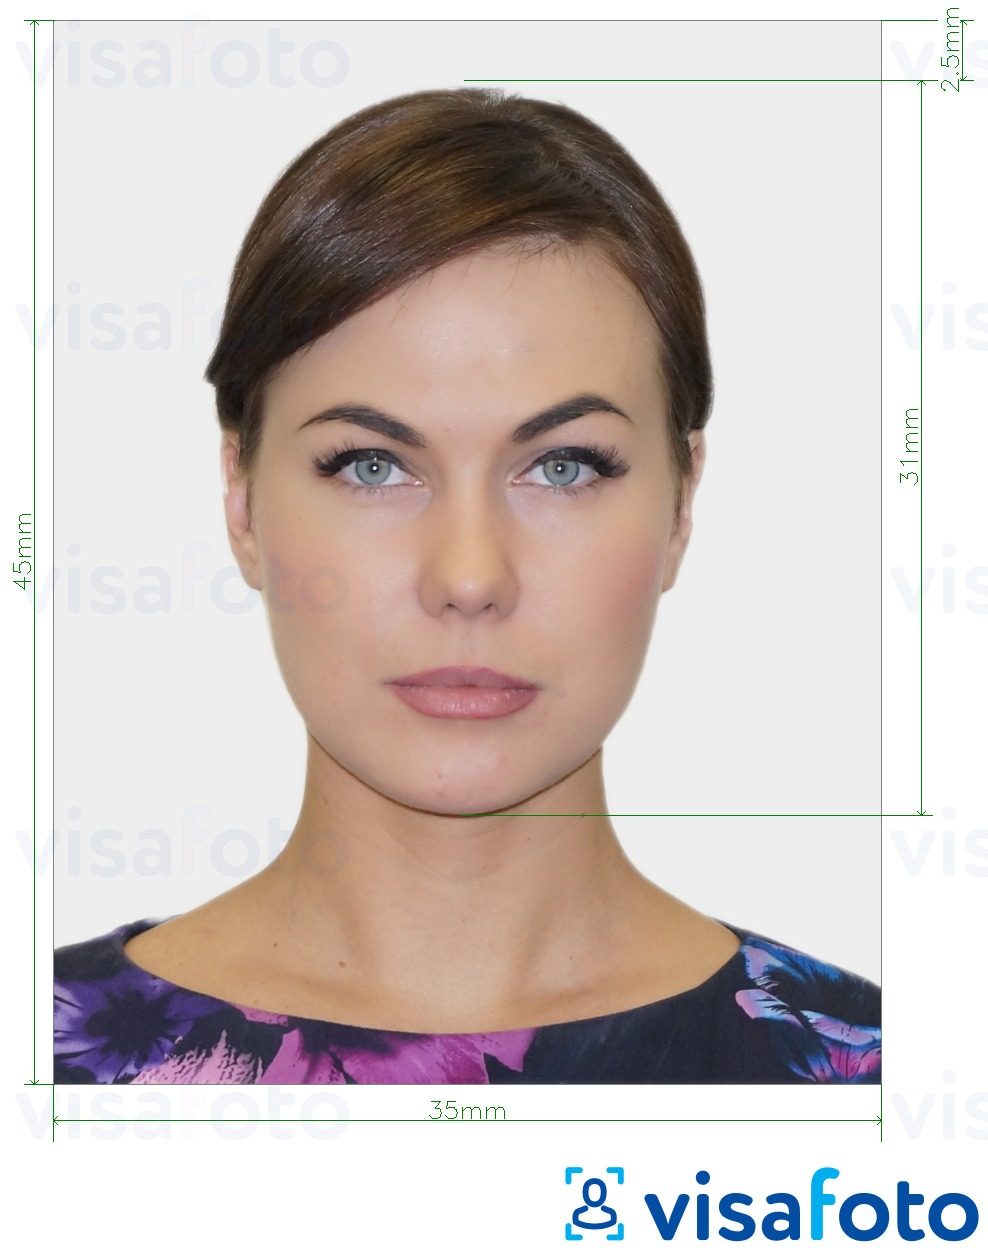 Example of photo for Belgium Visa 35x45 mm (3.5x4.5 cm) with exact size specification